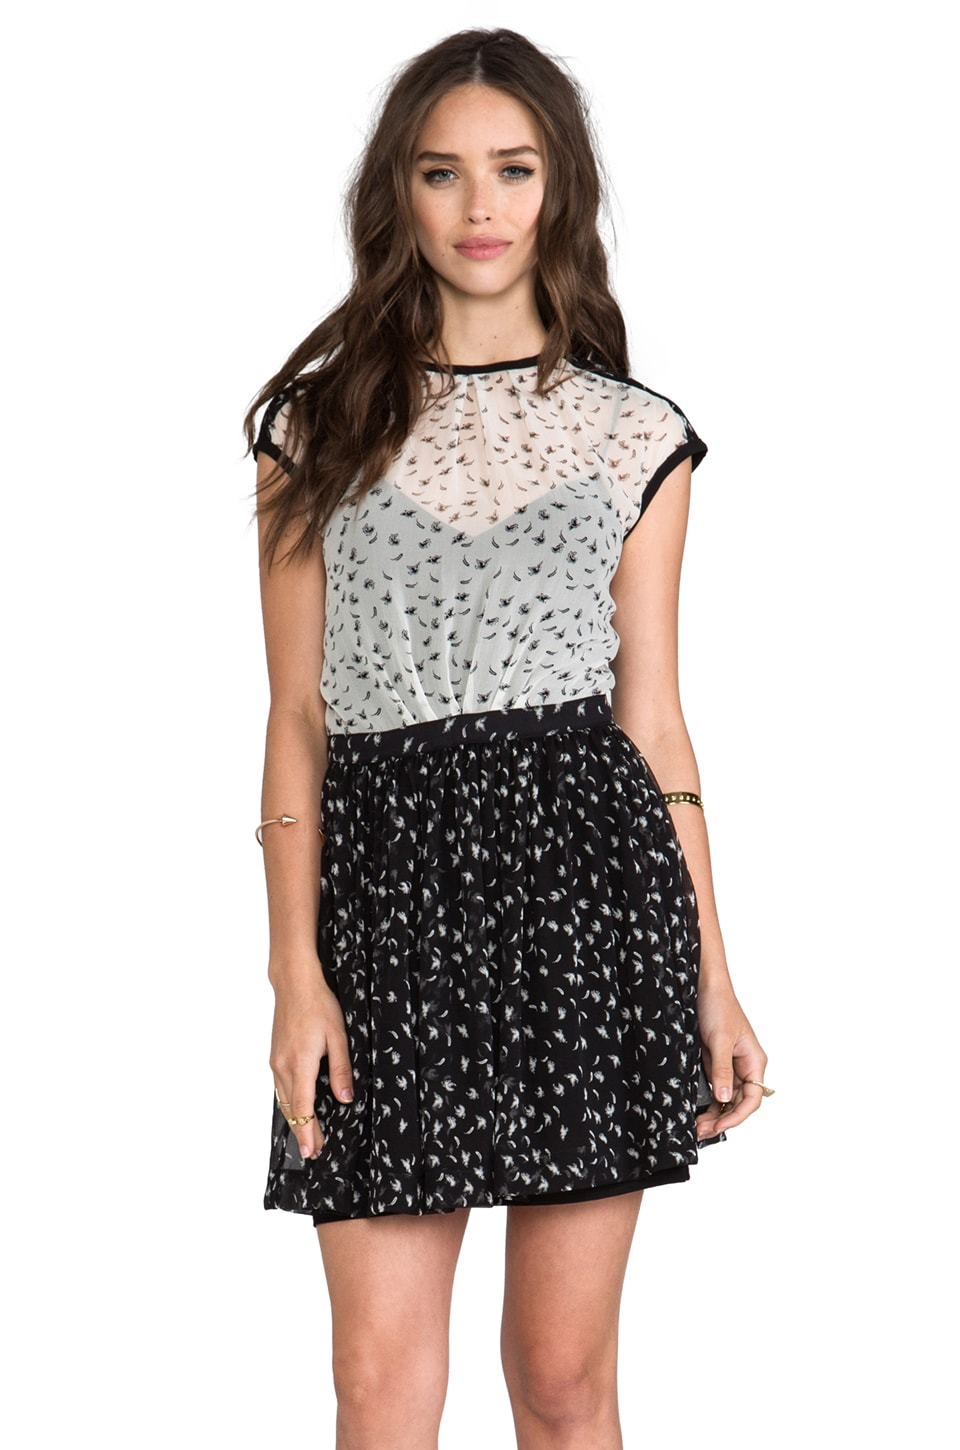 Funktional Glimmer Colorblock Print Dress in Black/White